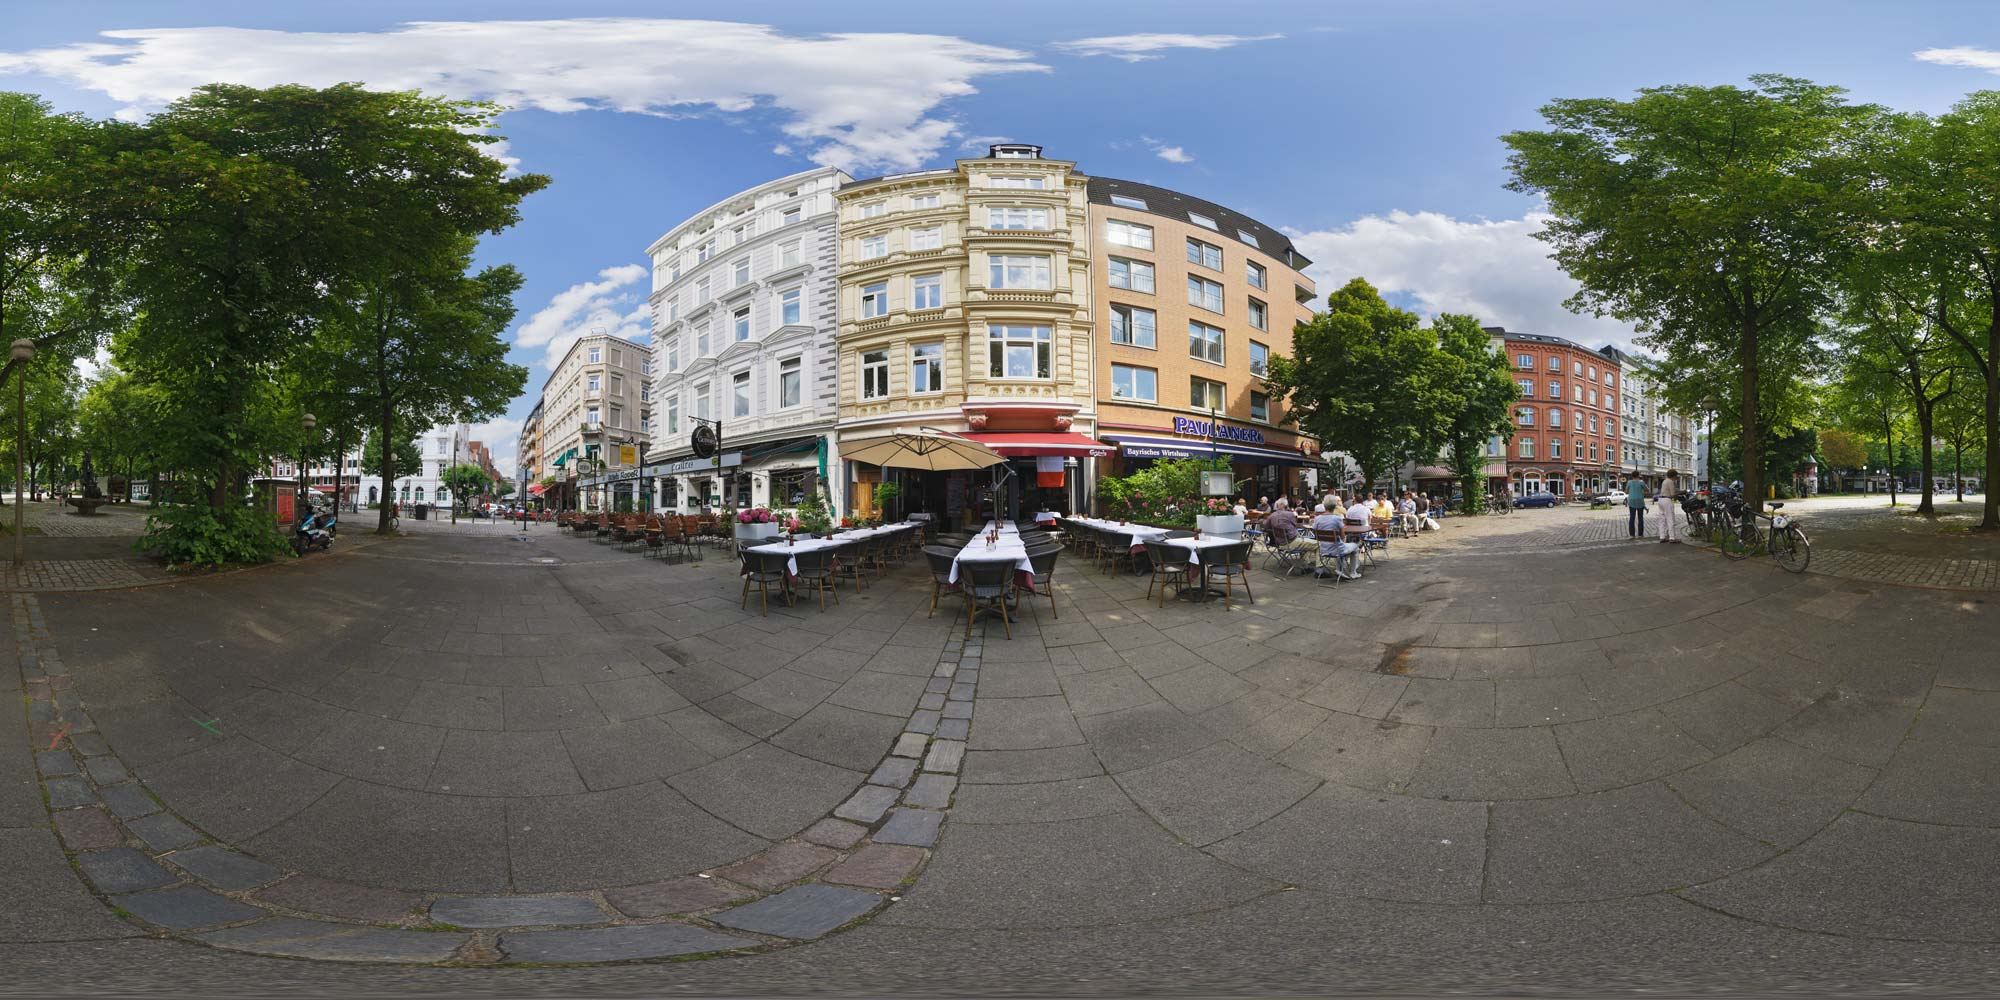 kubische panoramen panorama foto hamburg innenstadt grossneumarkt. Black Bedroom Furniture Sets. Home Design Ideas